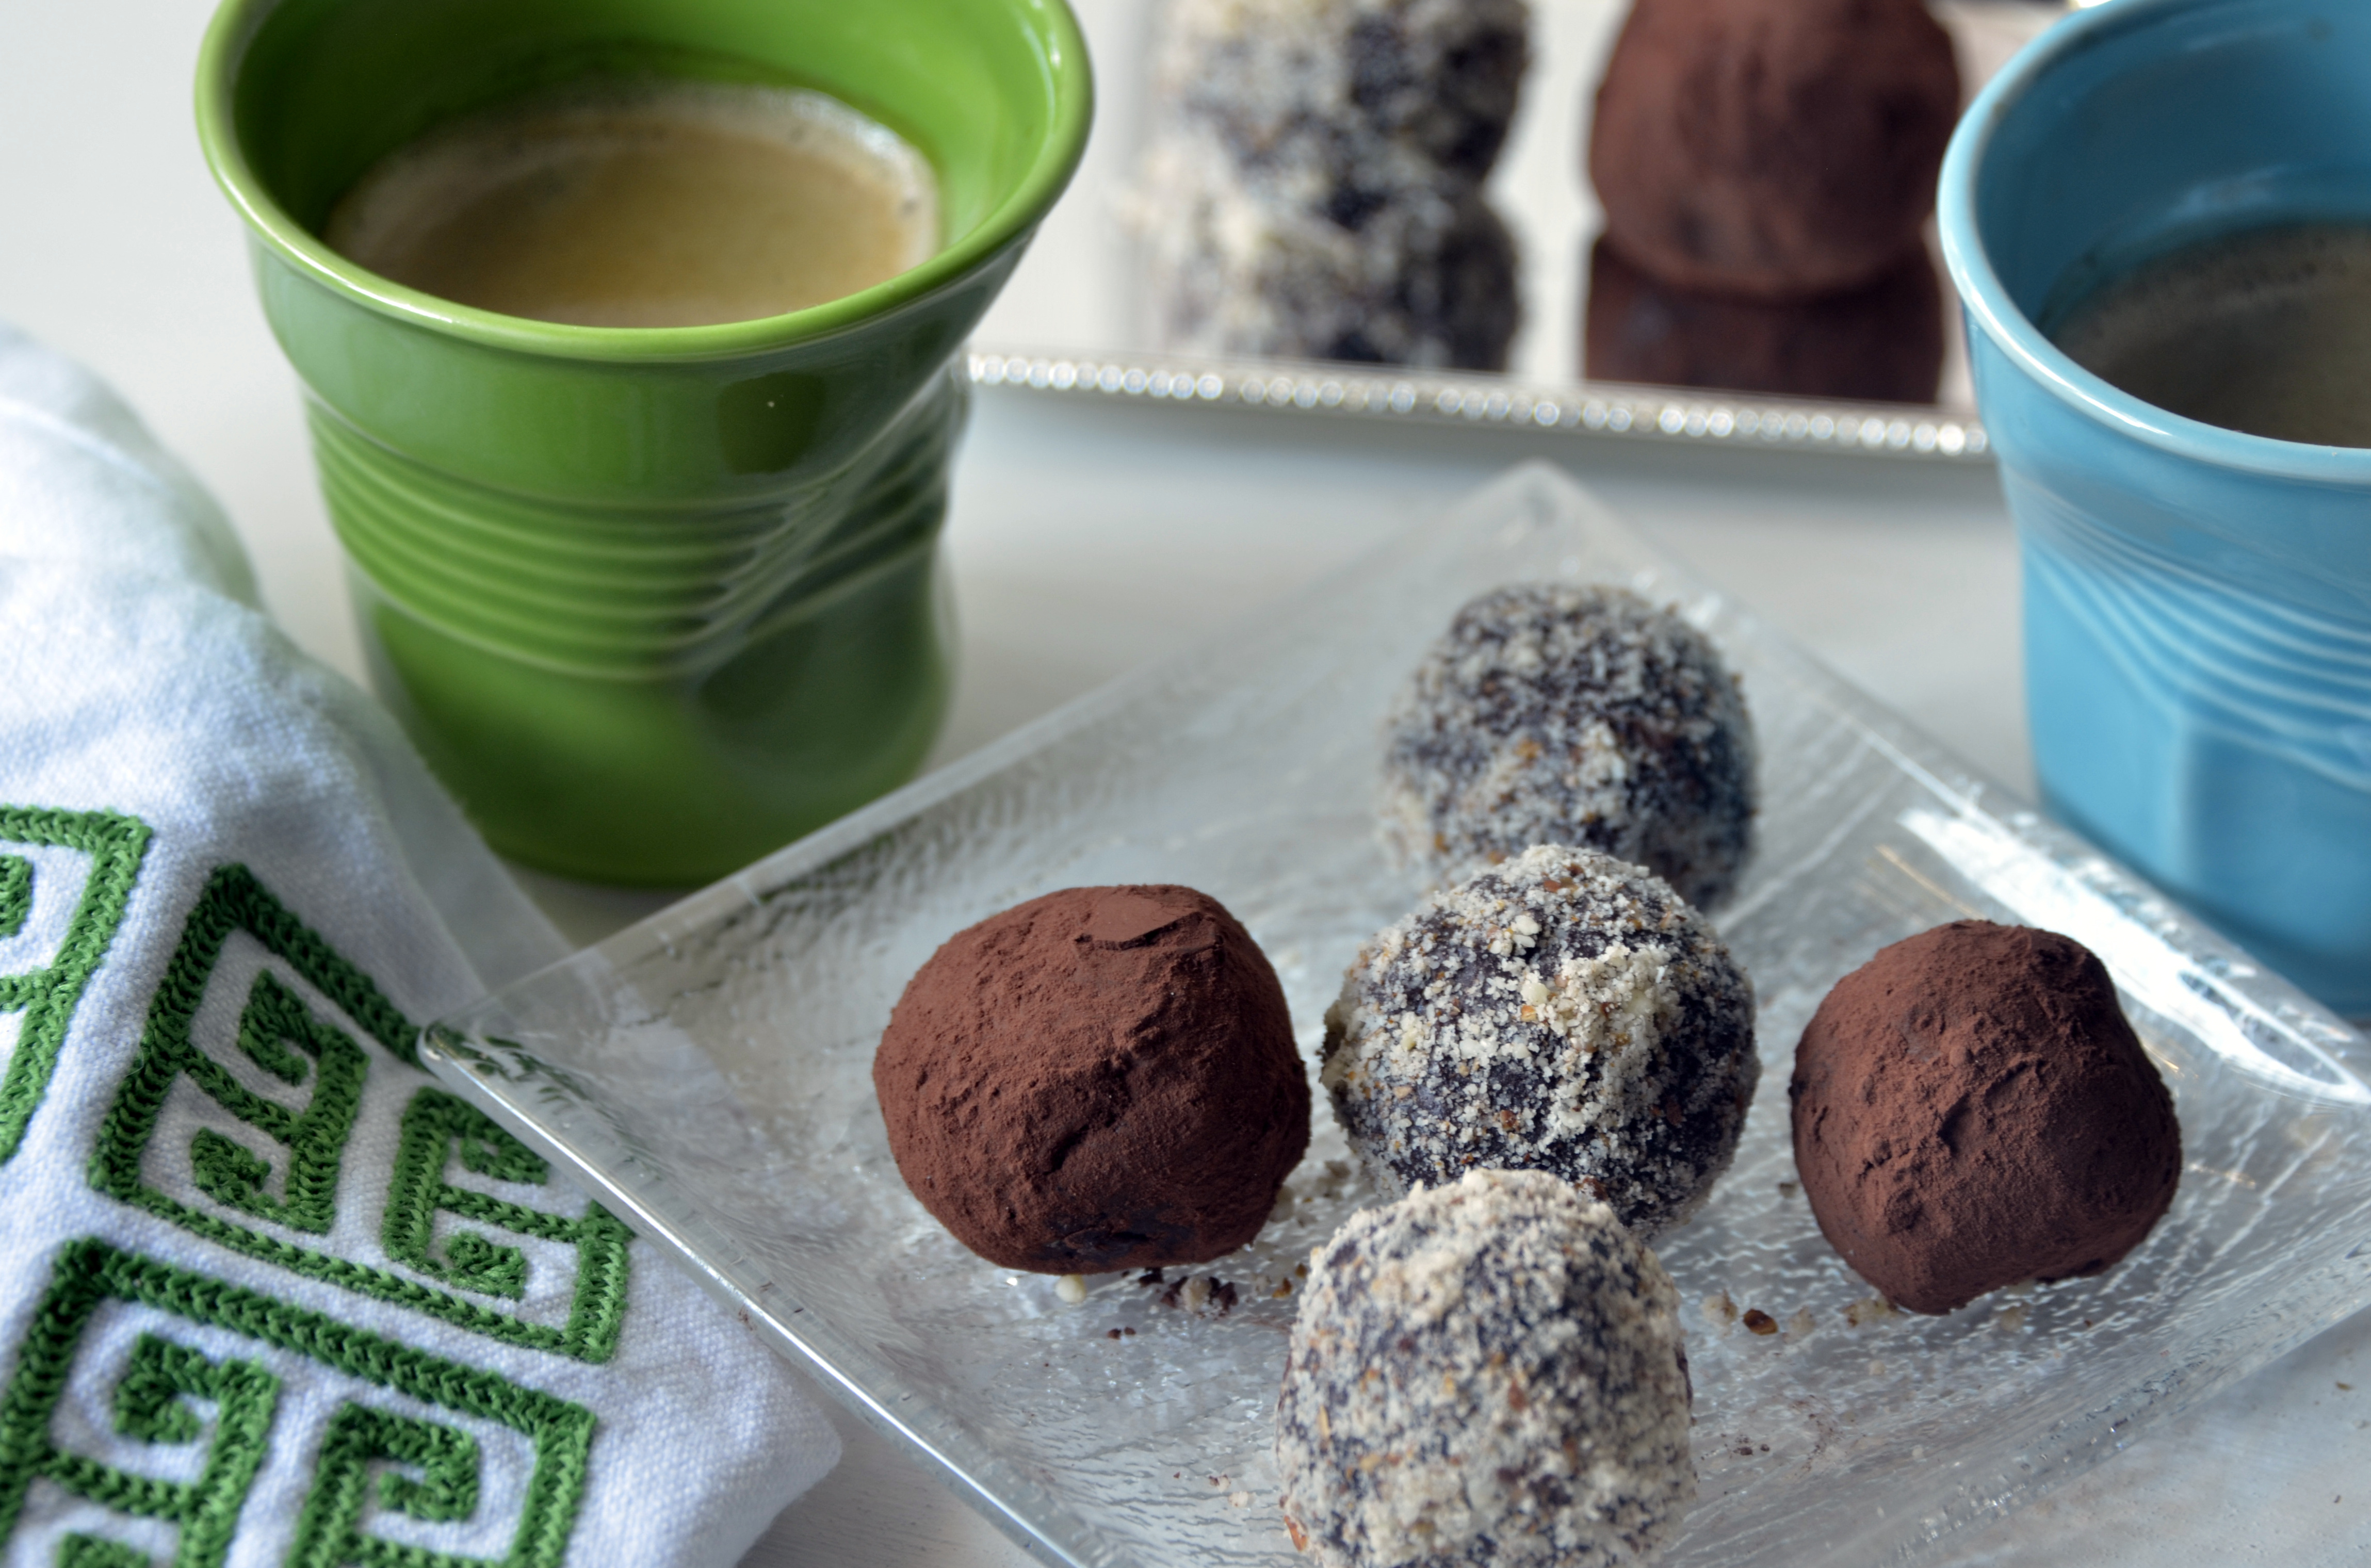 A shot of coffee and a truffle goes a long way!